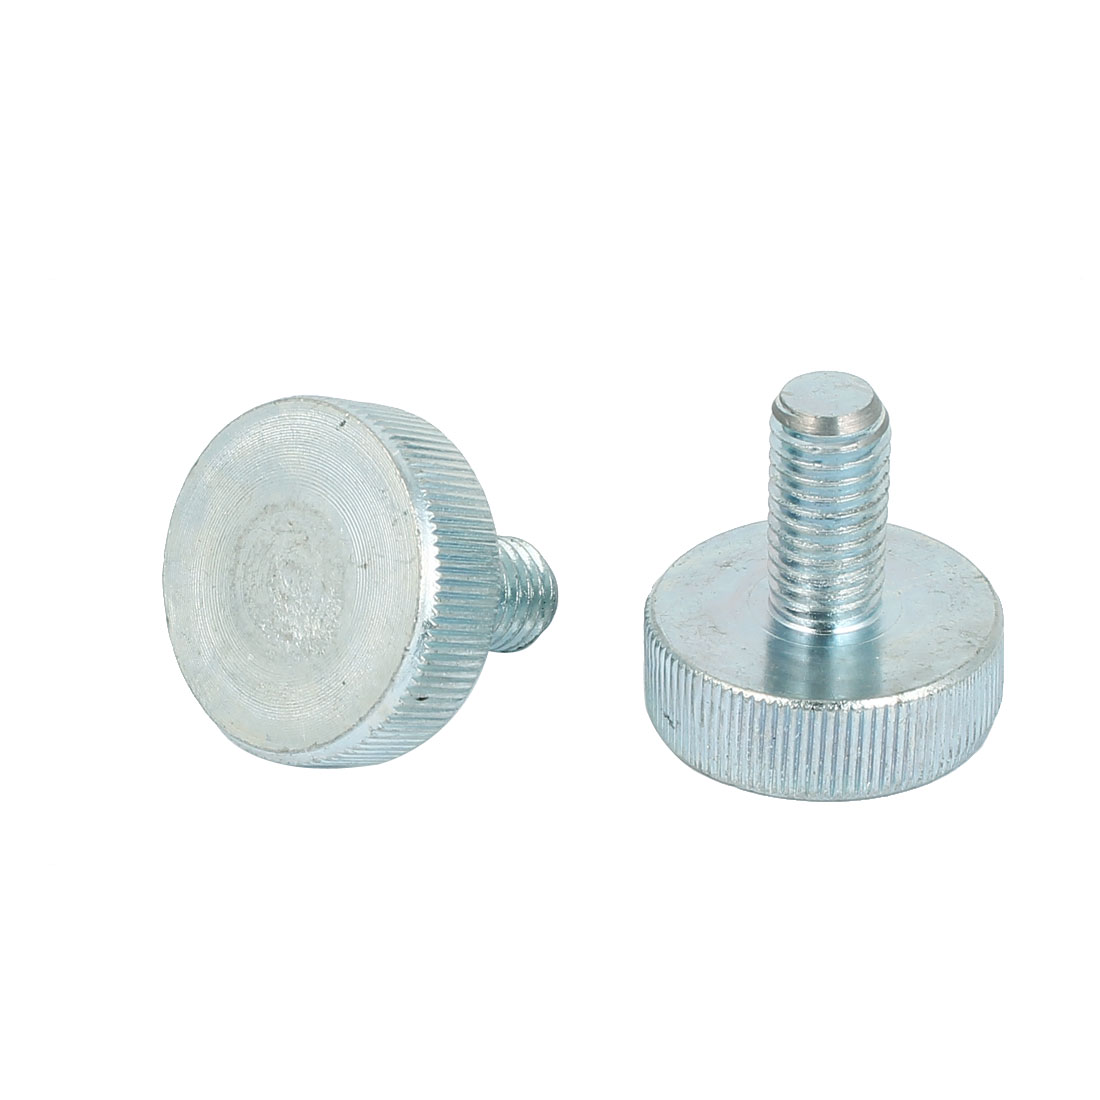 M10x20mm Thread Carbon Steel Knurled Round Head Thumb Screws Silver Blue 2pcs